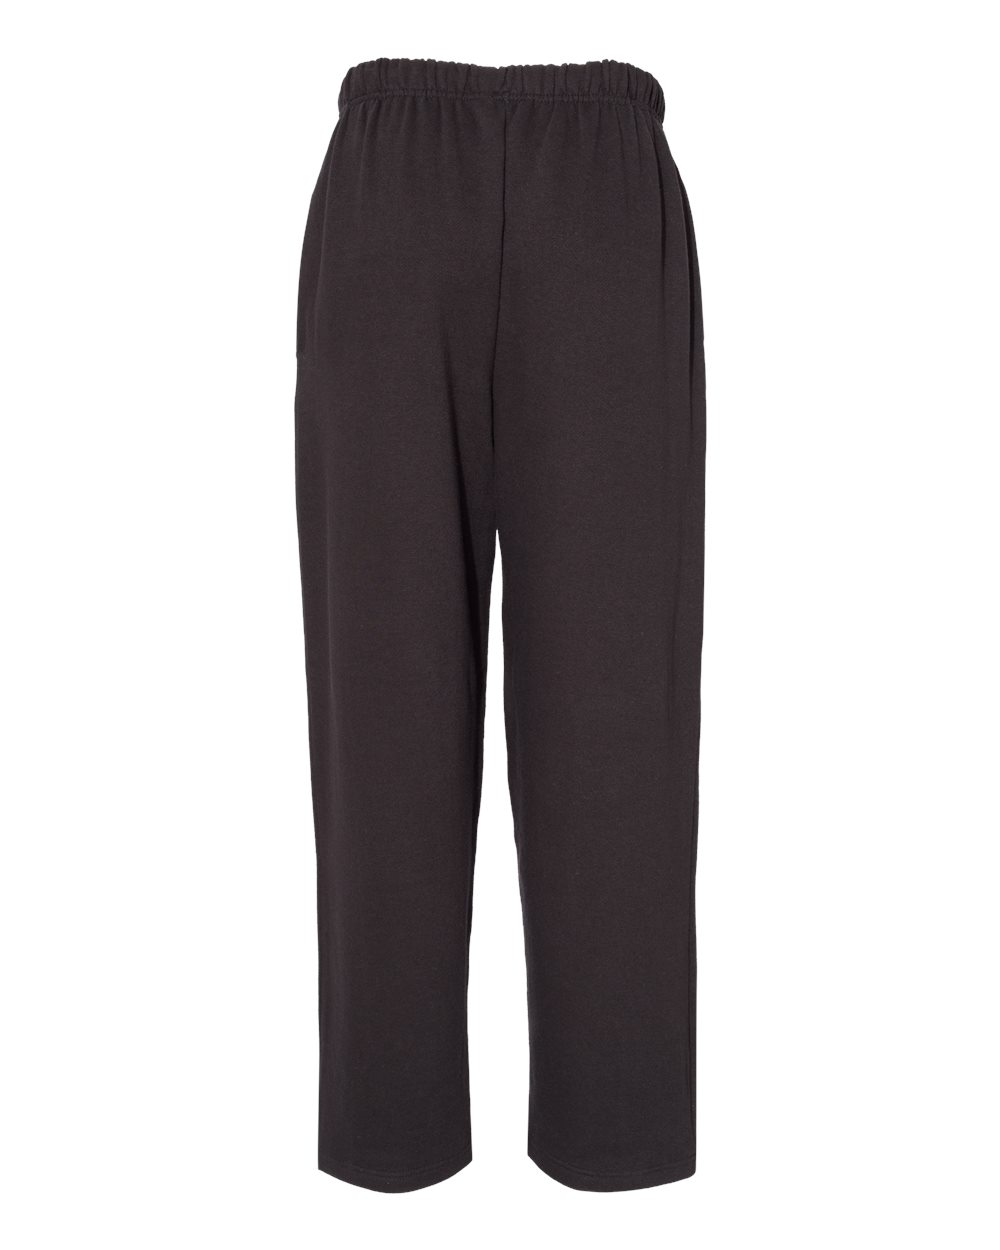 C2-Sport-Mens-Open-Bottom-Sweatpants-With-Pockets-5577-up-to-4XL thumbnail 7